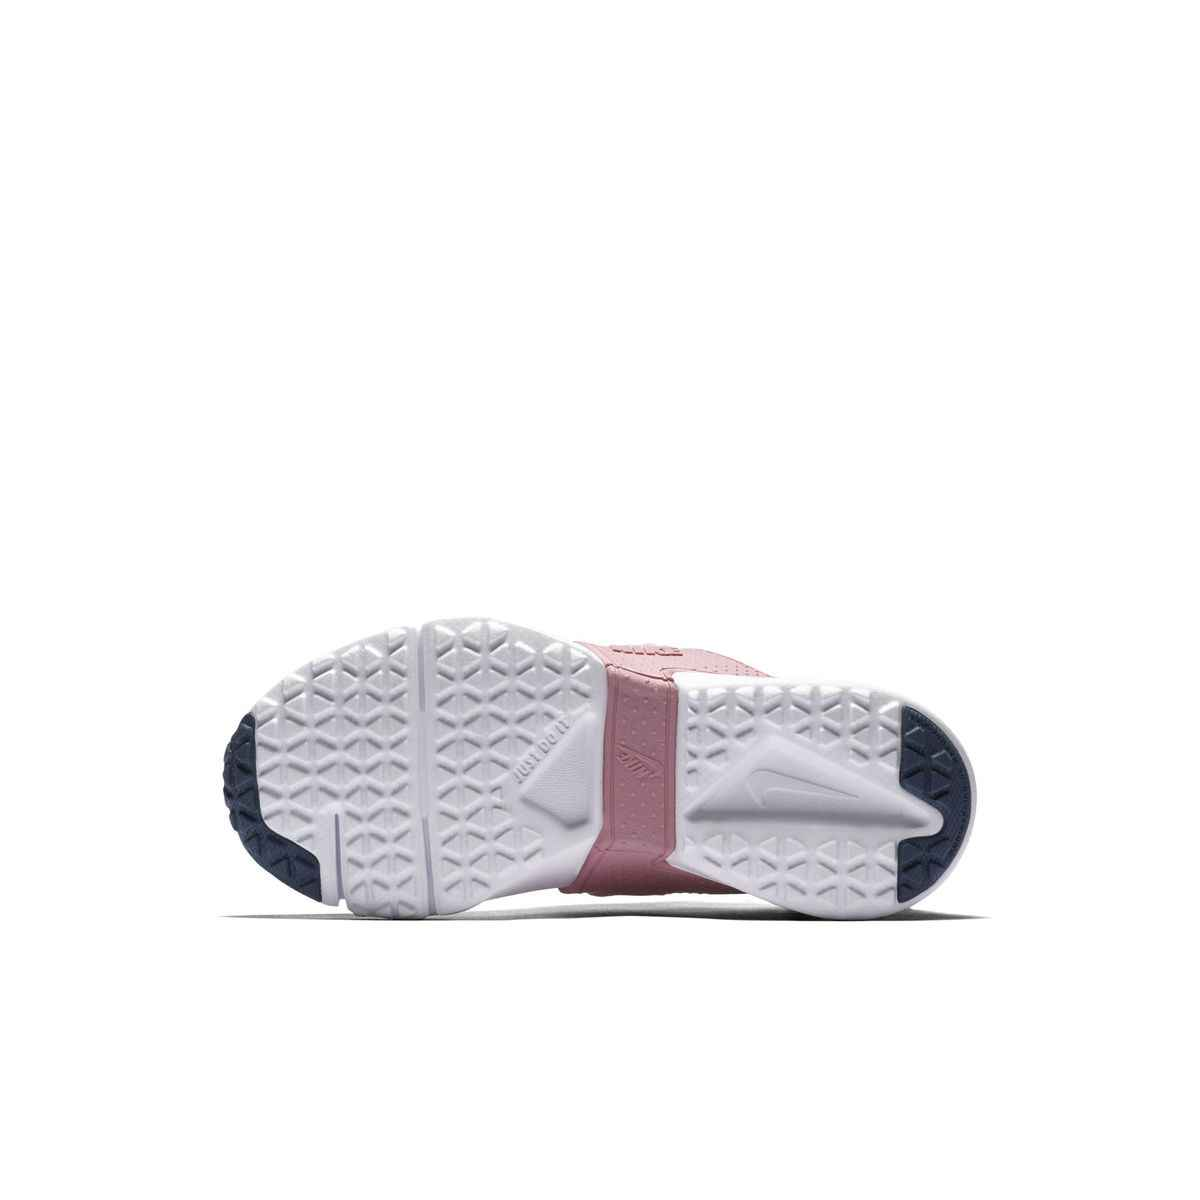 11ada65868fc ... NIKE Kids HUARACHE EXTREME PS Toddler Motion Children s Shoes Outdoor  Casual Running Sneakers AH7826 ...